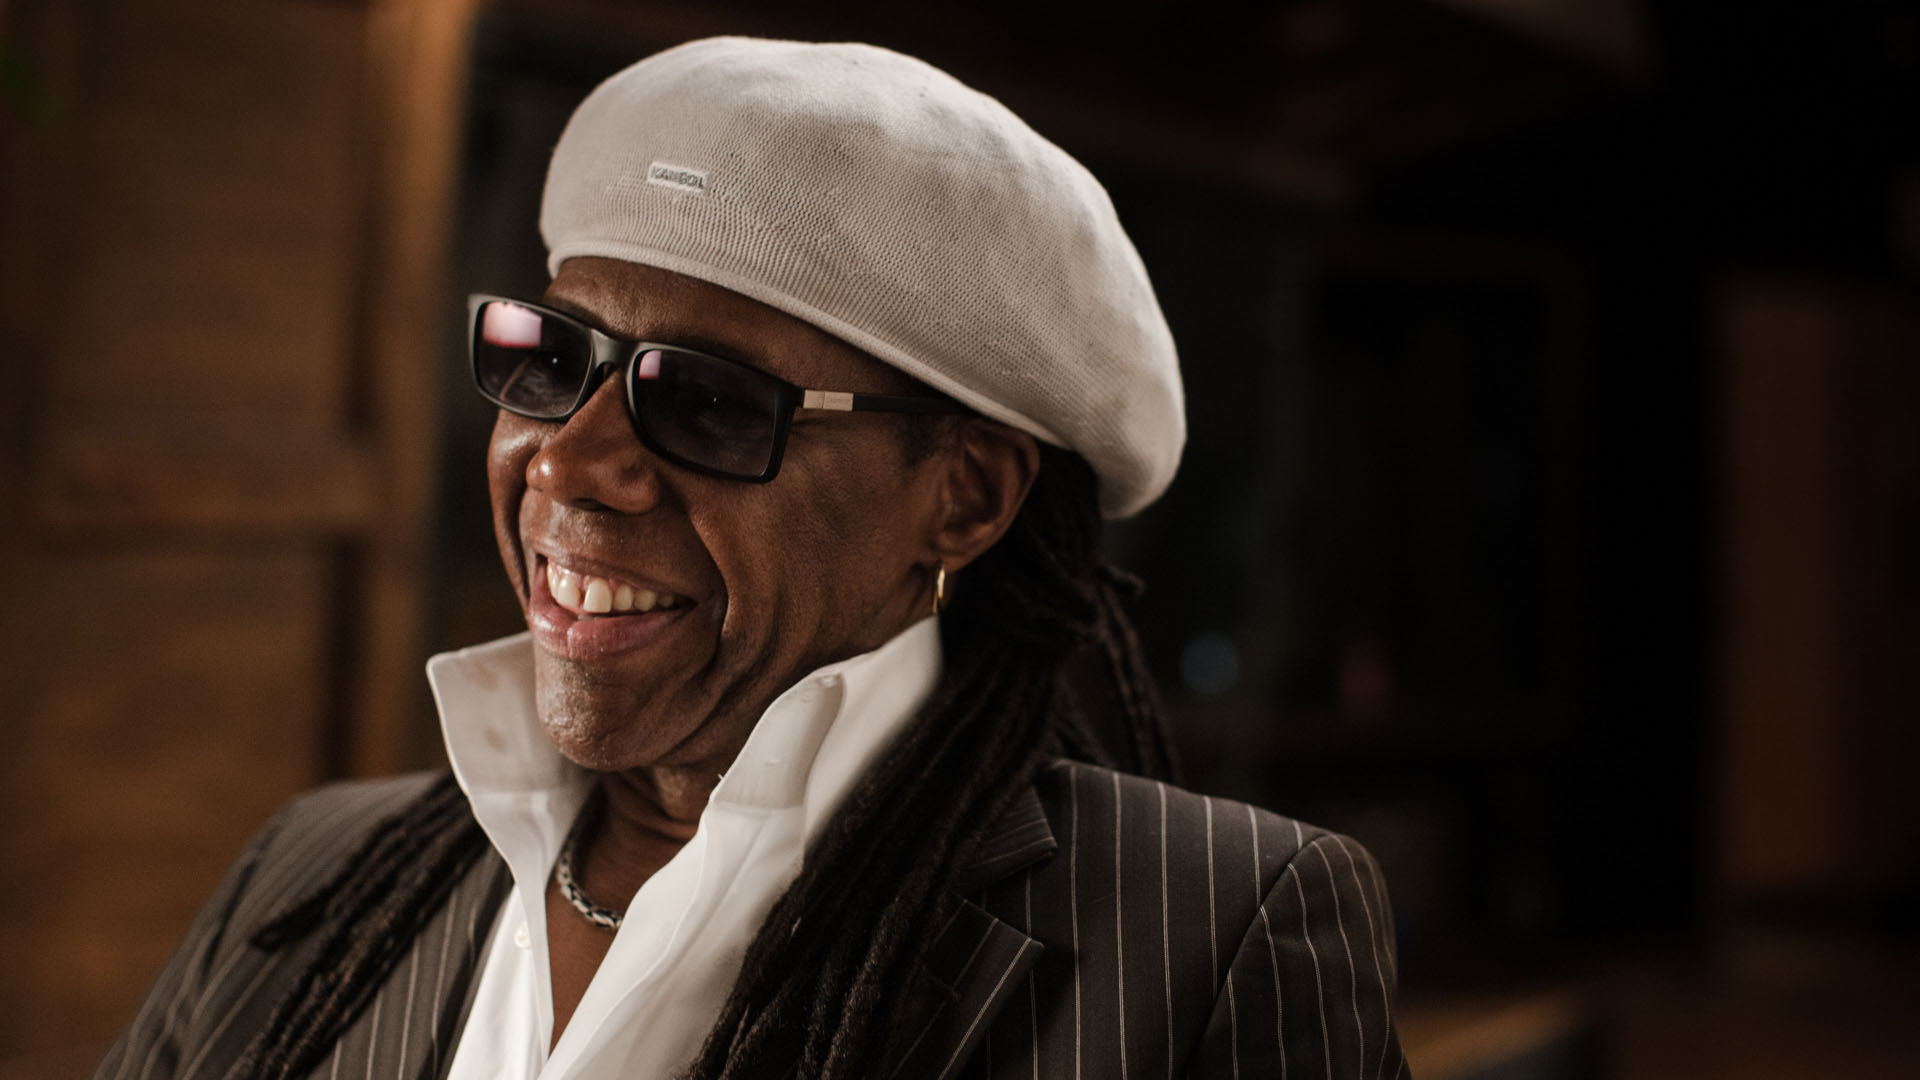 Nile Rodgers, lead guitarist and co-founding member of Chic, is a record producer, songwriter, musician, composer, arranger and guitarist.